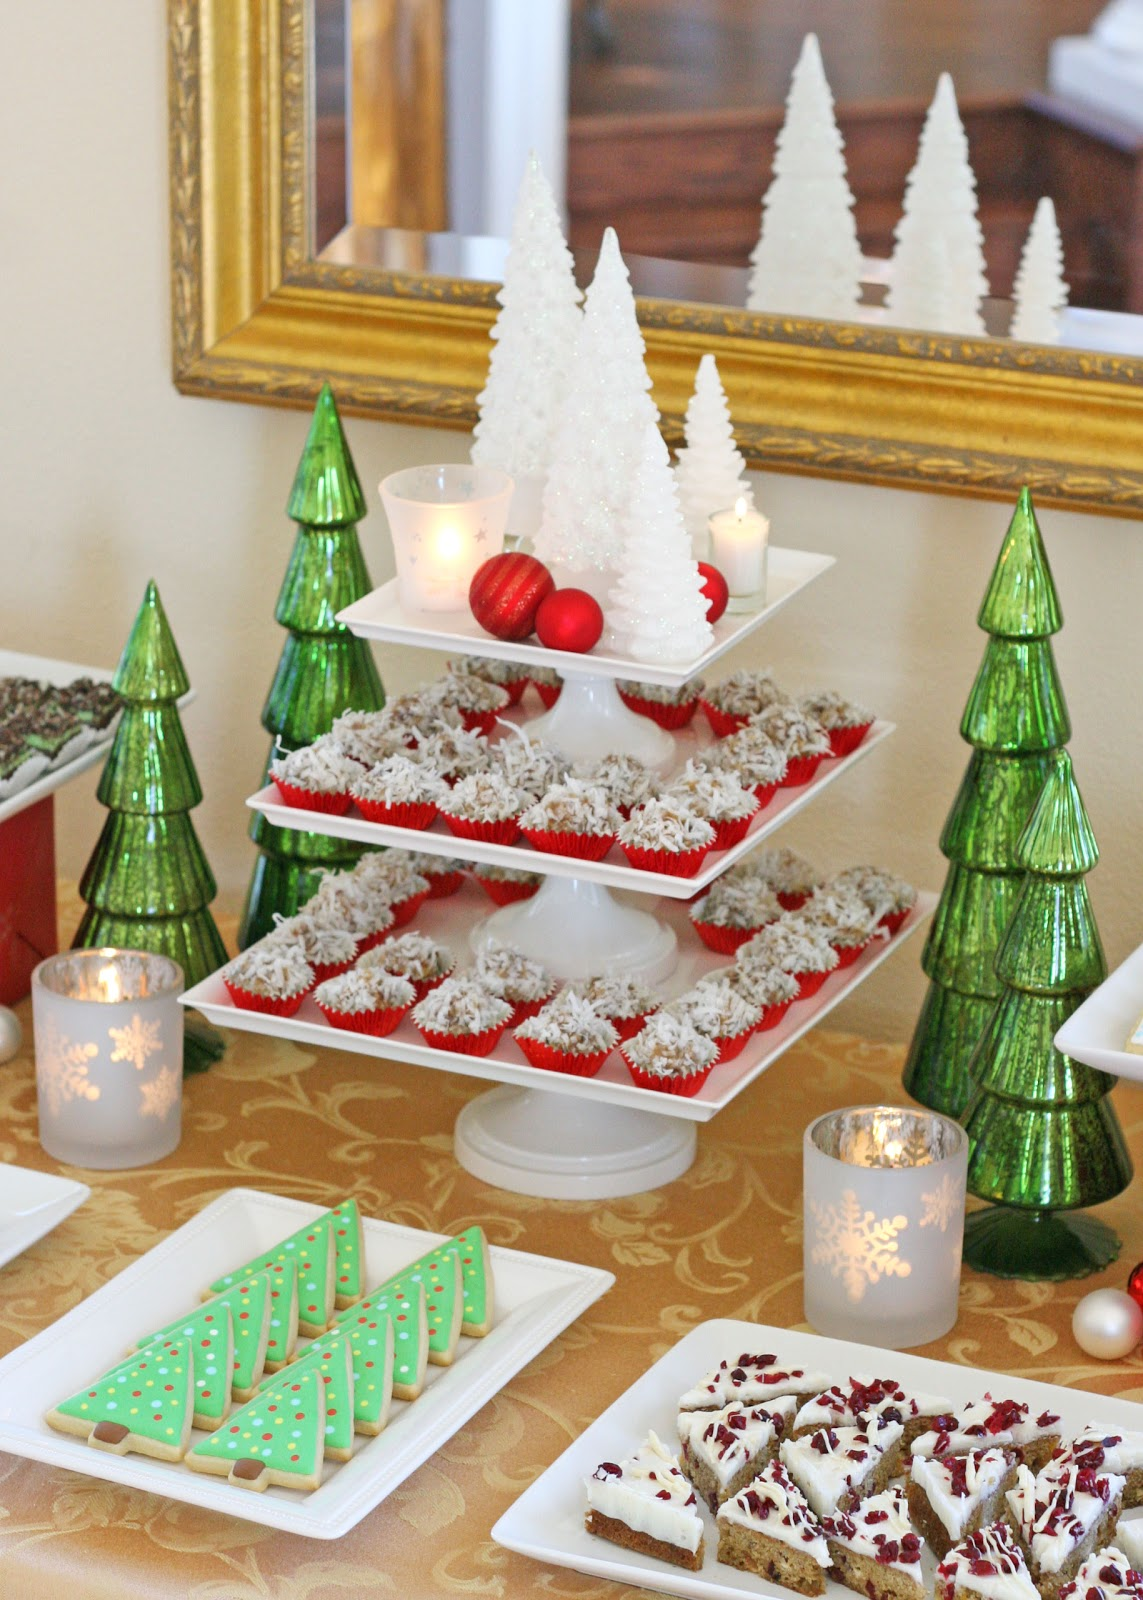 Best Classic Holiday Dessert Table Glorious Treats This Month